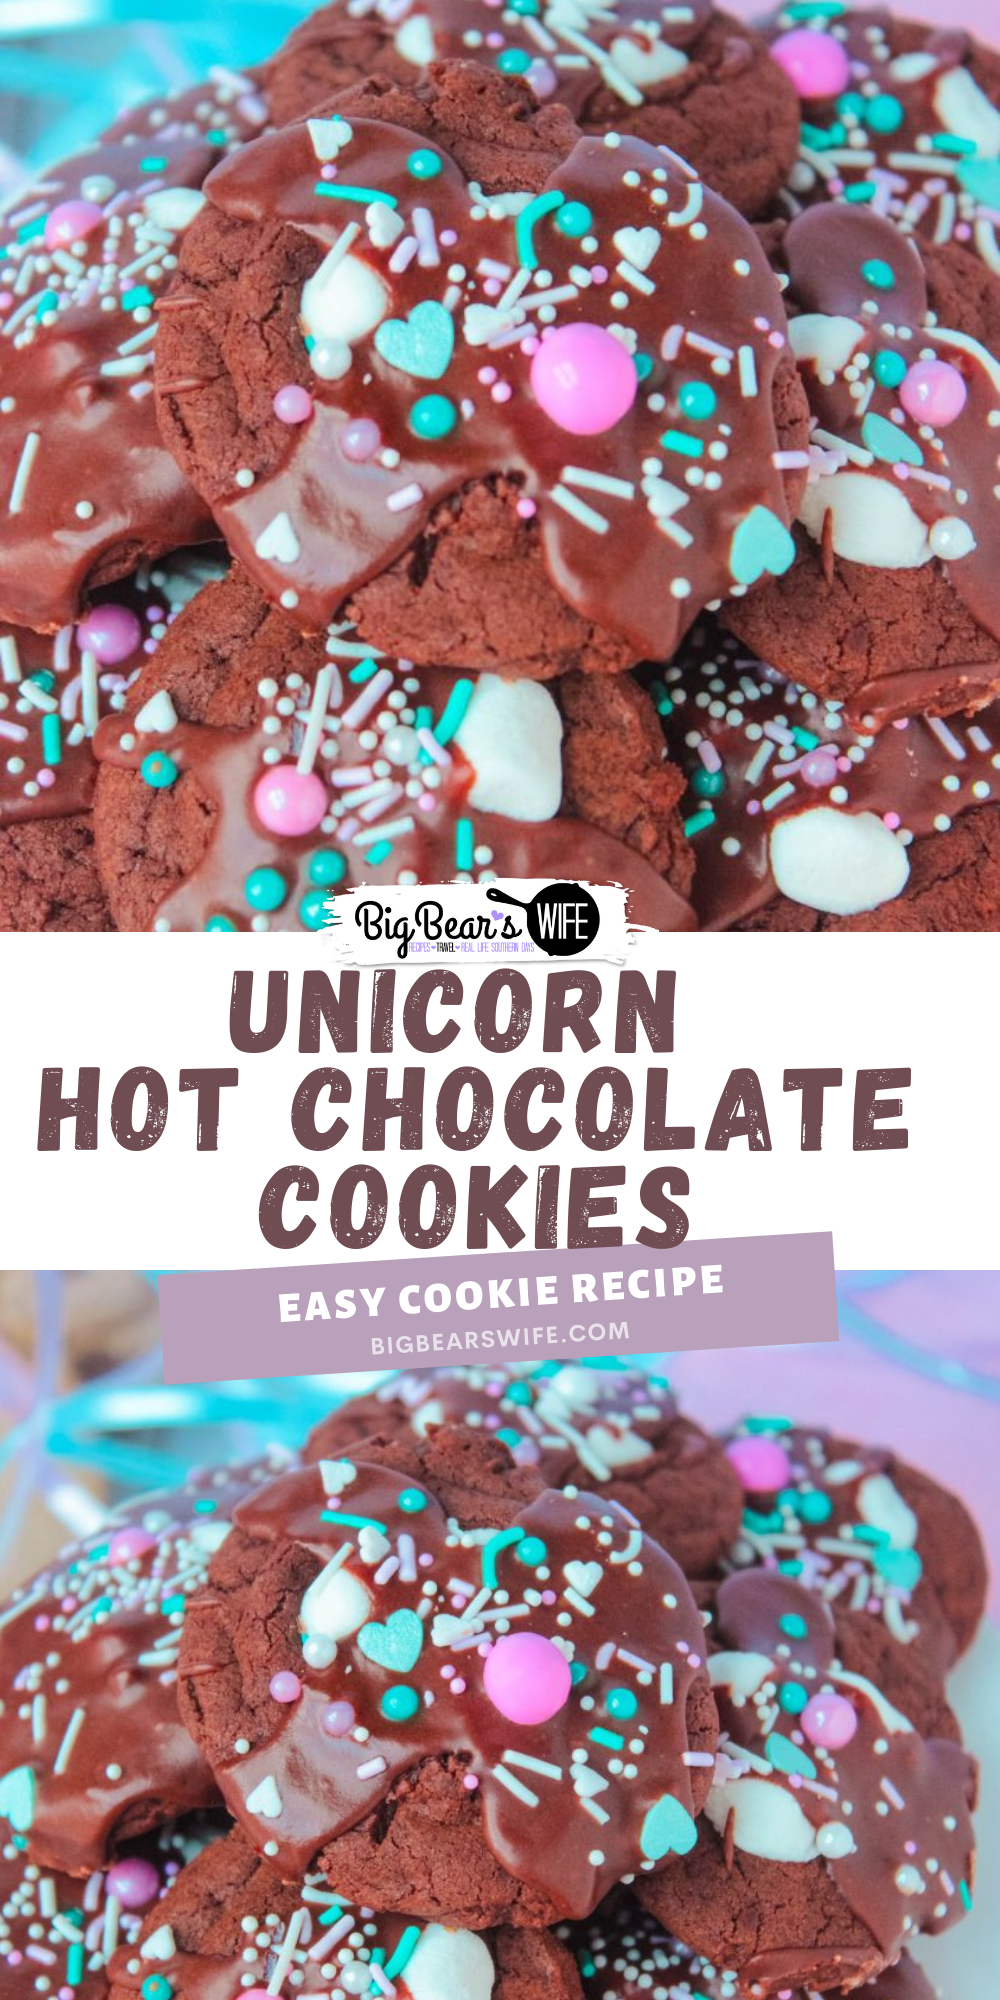 """Hot Chocolate Cookies are the MOST requested dessert at our partiesand cookout outs! This version is what I like to call """"Unicorn Hot Chocolate Cookies"""". Just like my Christmas cookies, they're rich chocolate cookies with melted marshmallows stacked on top with a chocolate glaze drizzle and sprinkles! via @bigbearswife"""